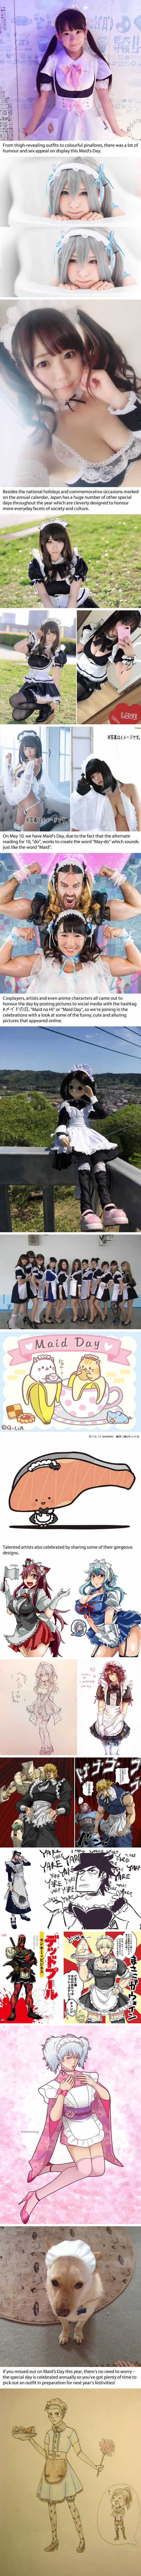 Cosplayers, artists and anime characters celebrate Maid's Day in Japan